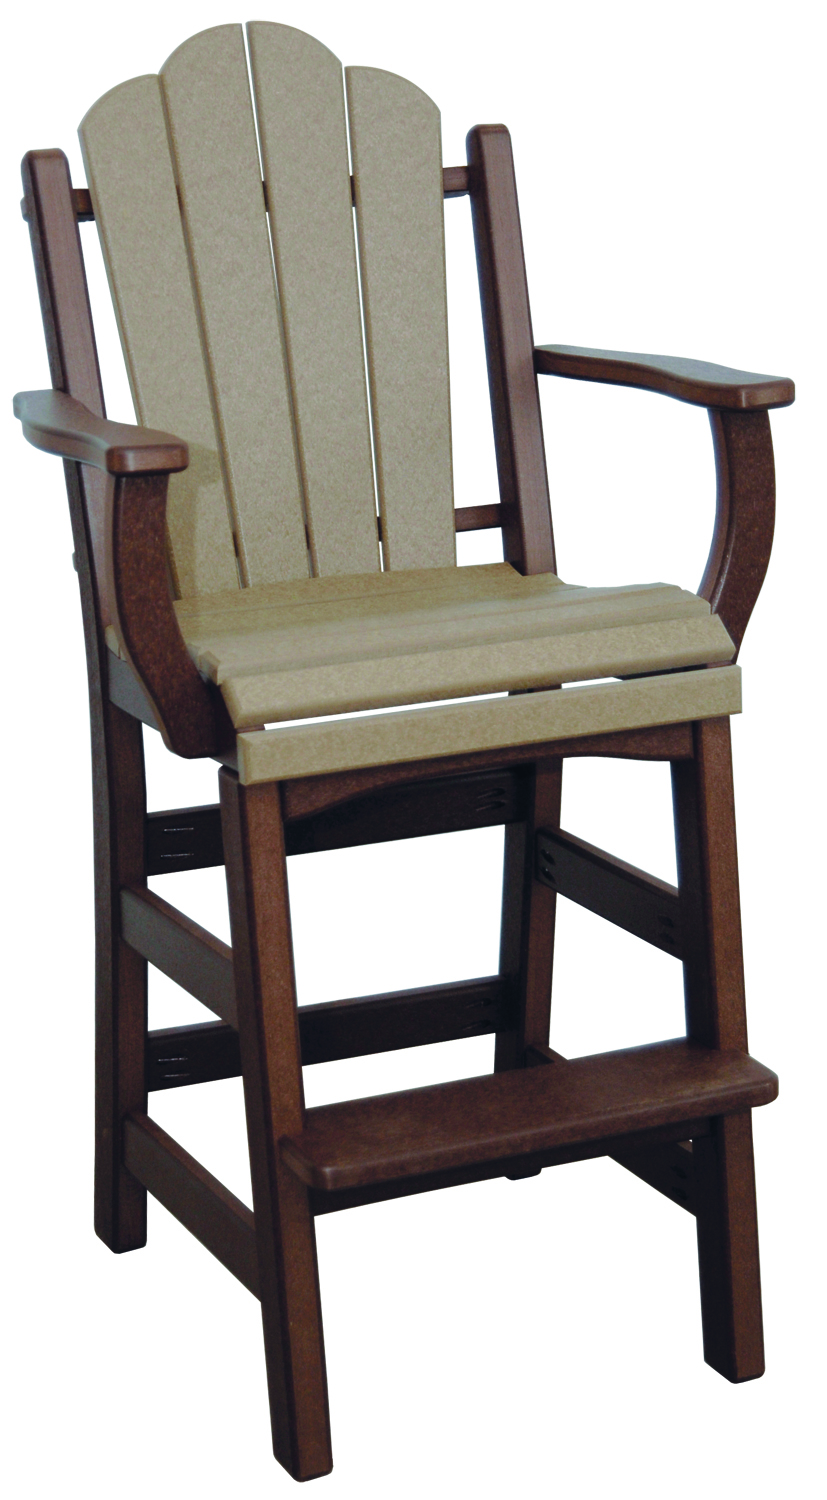 outdoor furniture supplier in Slippery Rock, PA